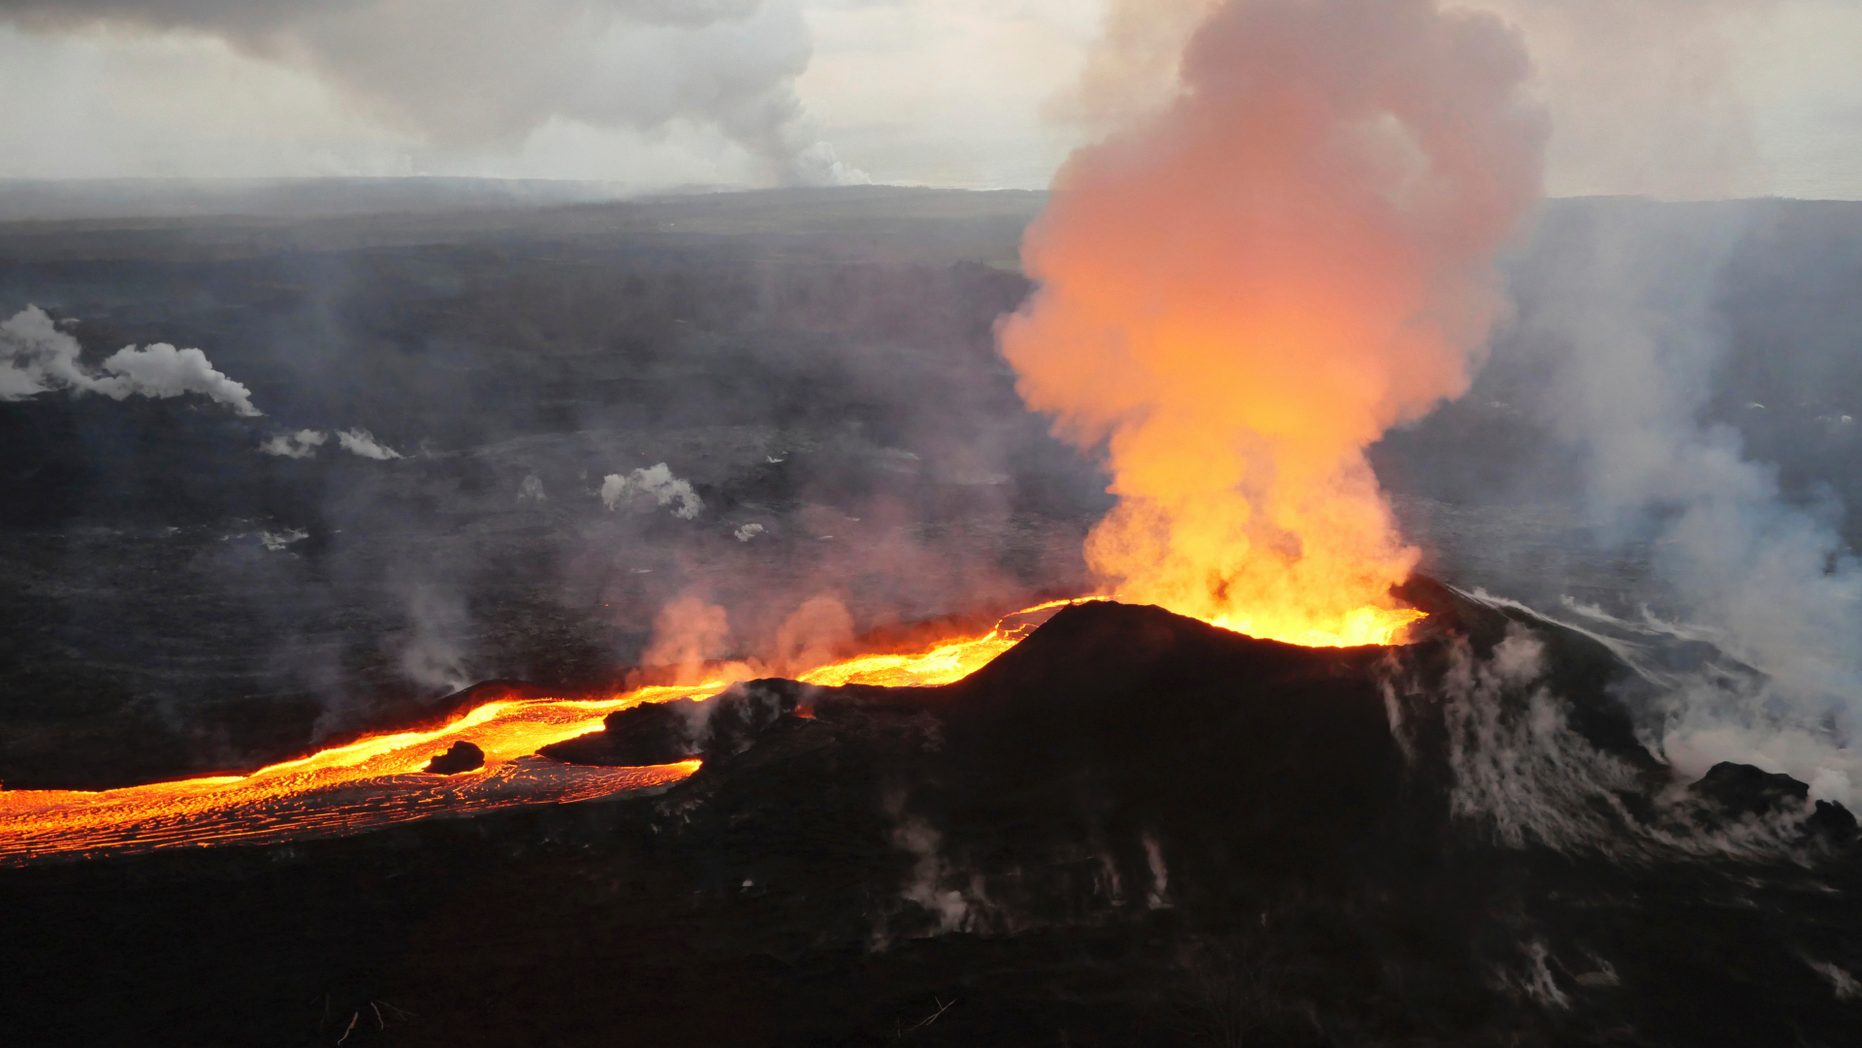 """FILE - In this Saturday, July 14, 2018 photo provided by the U.S. Geological Survey, lava from Kilauea volcano erupts in the Leilani Estates neighborhood near Pahoa, Hawaii. On Thursday, Oct. 25, 2018, government scientists updated 18 U.S. volcanoes as a """"very high threat"""" because of what's been happening inside them and how close they are to people. (U.S. Geological Survey via AP)"""